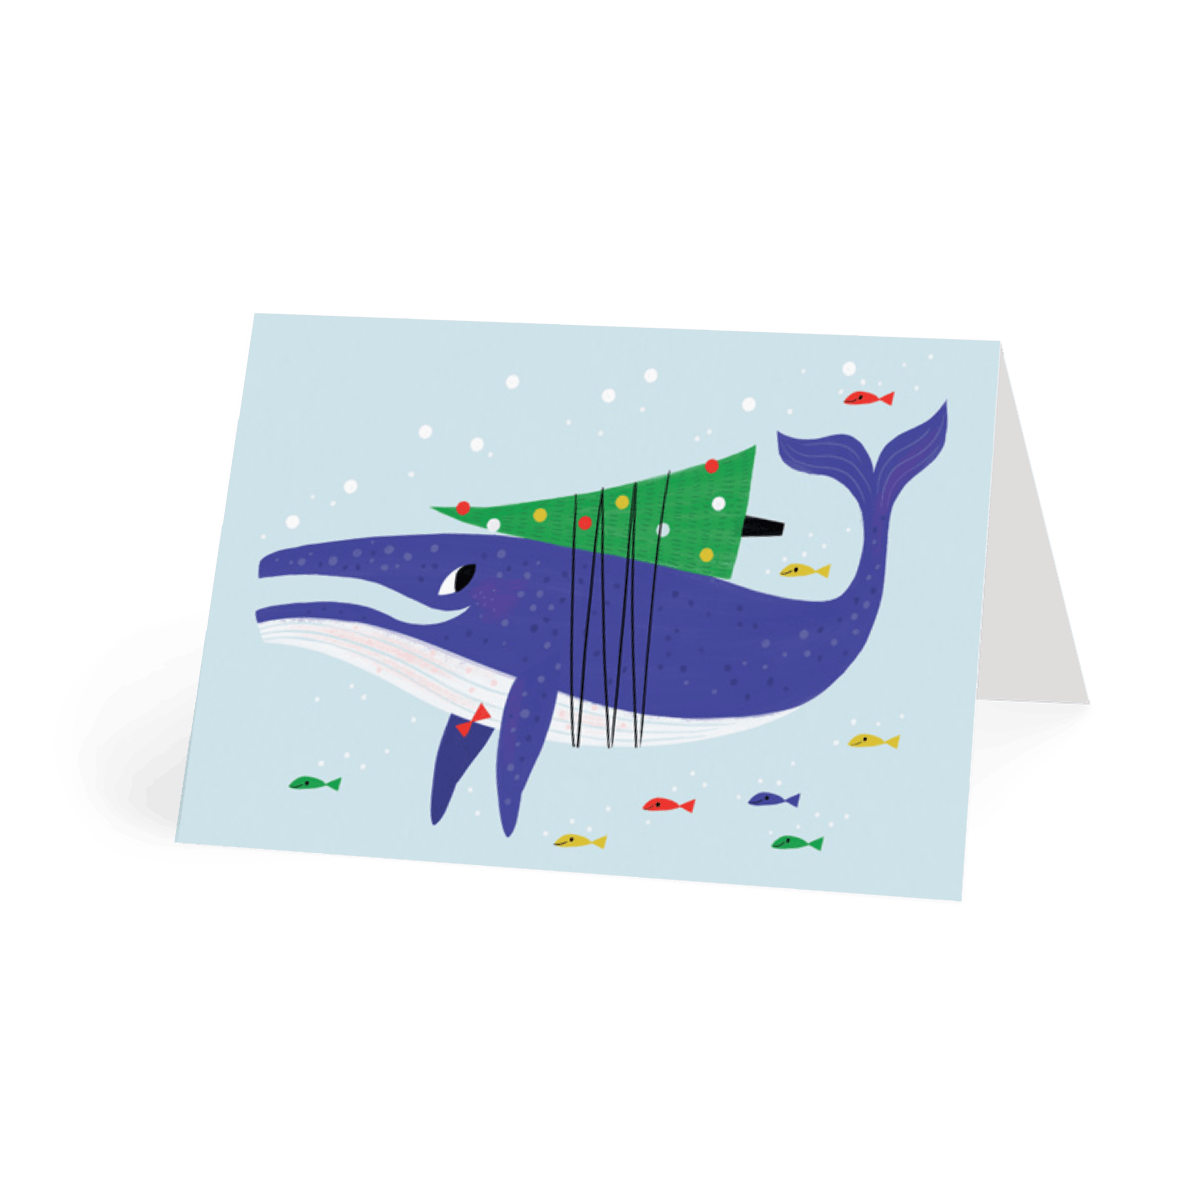 Https%3a%2f%2fwww.papier.com%2fproduct image%2f12447%2f14%2fchristmas whale 3135 front 1476955395.png?ixlib=rb 1.1